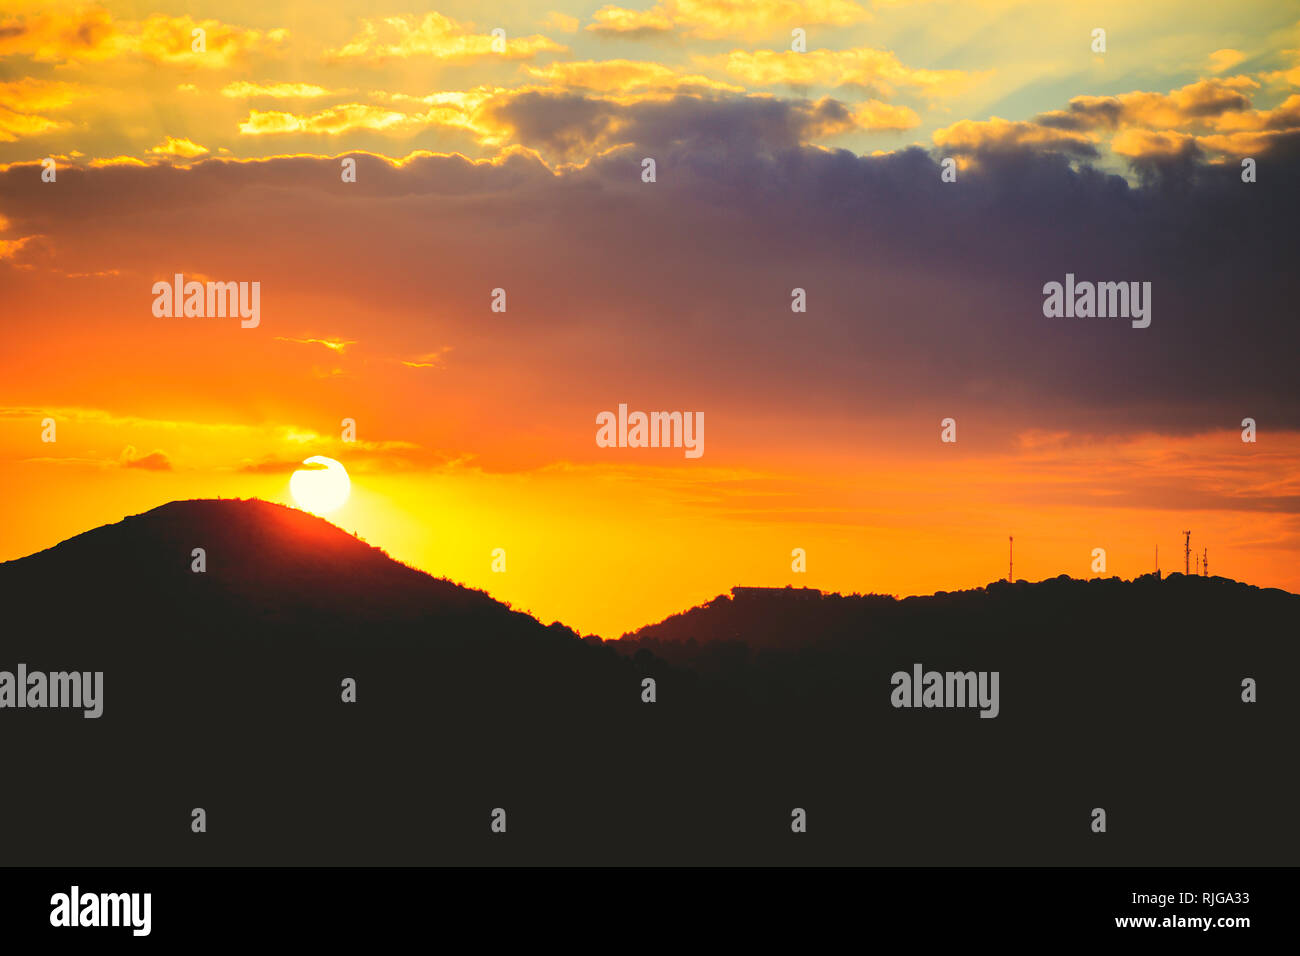 Panorama of sunset orange sky with sun shining above clouds. Mountain silhouette with reddish sky and sun - Stock Image